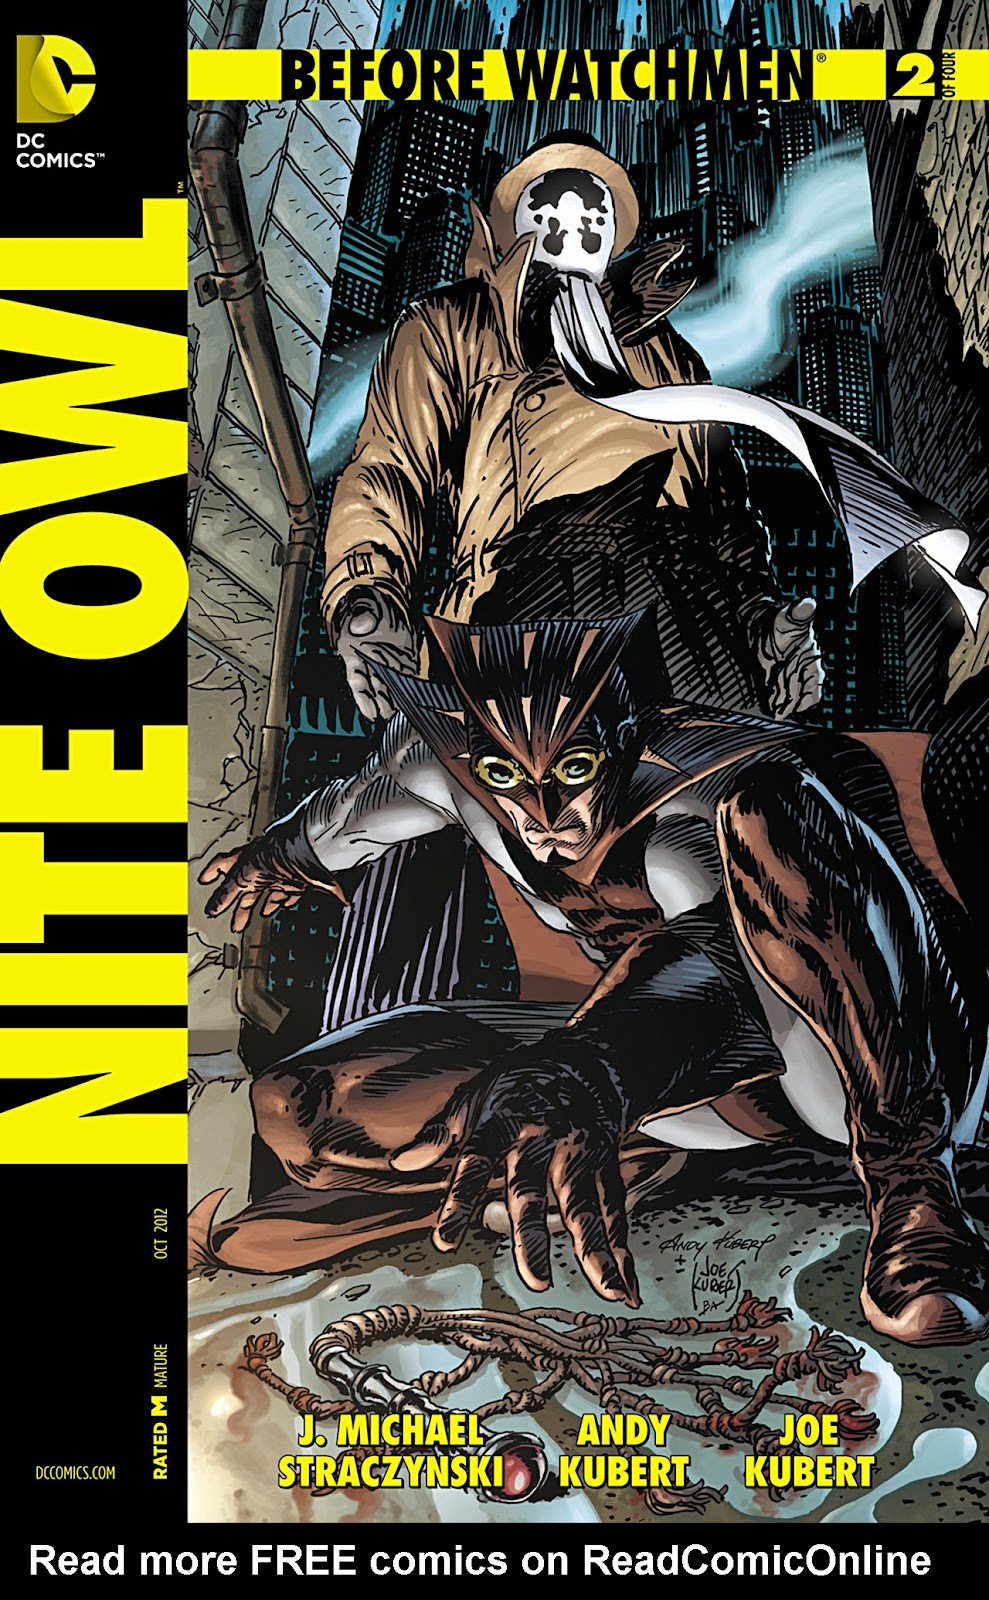 before watchmen nite owl issue 2 read full comics online for free